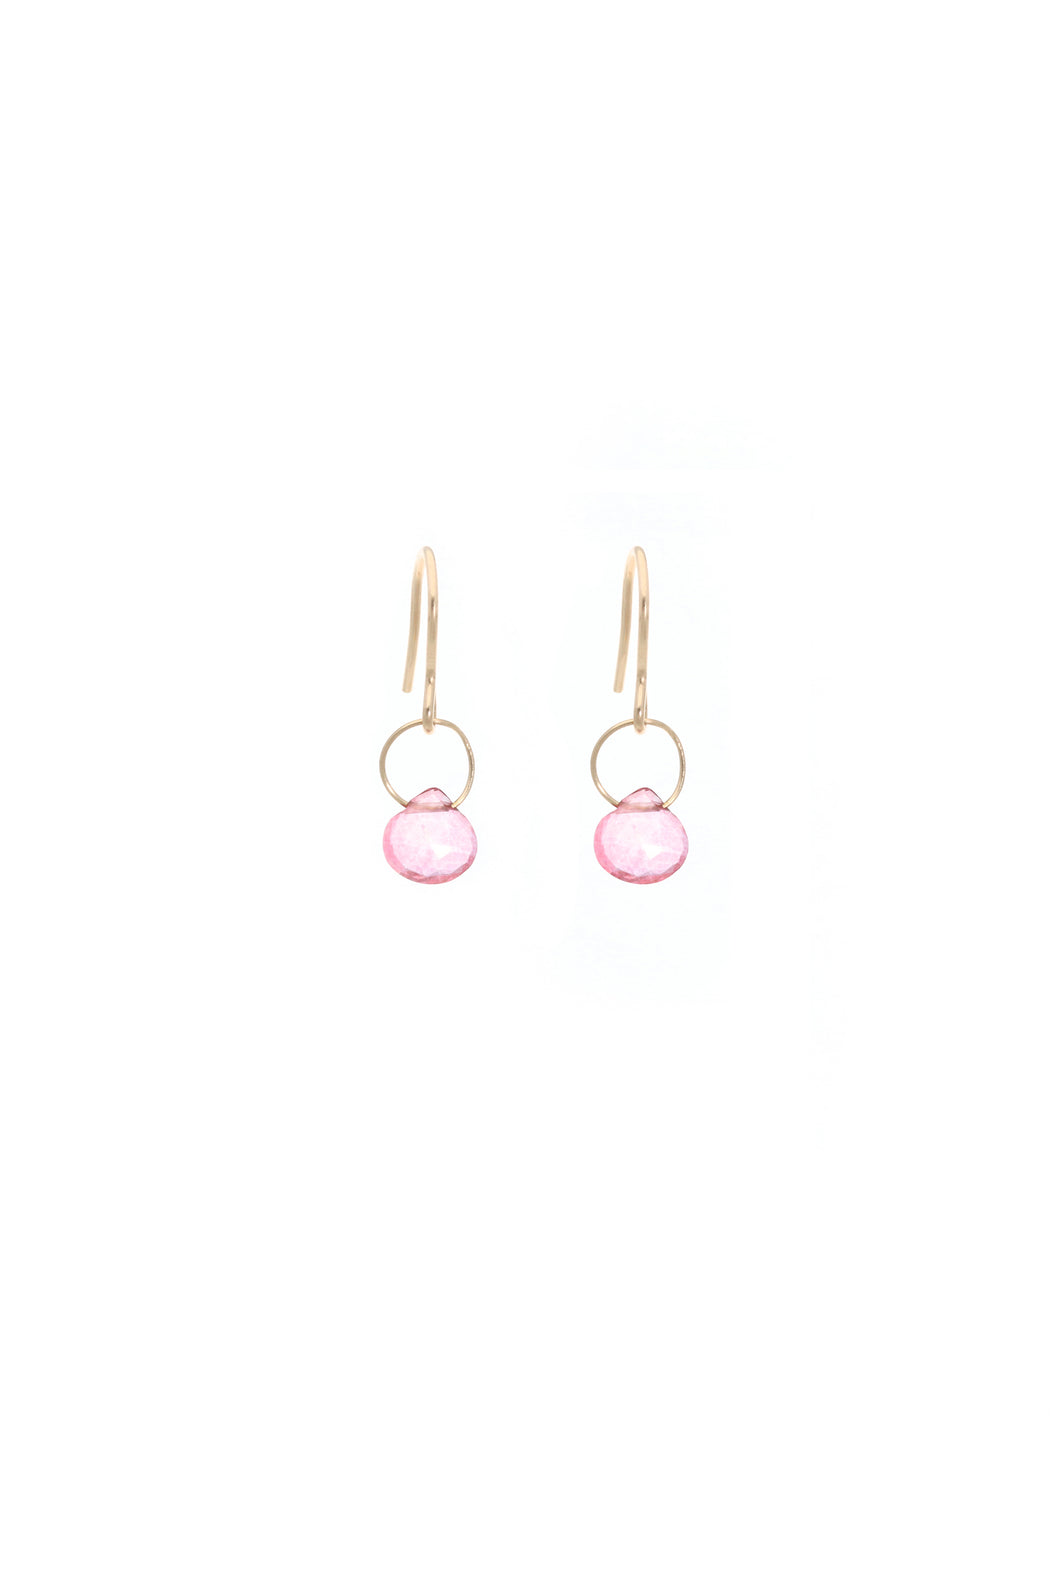 Blue Ruby Cause We Care Pink Topaz Hook Earrings